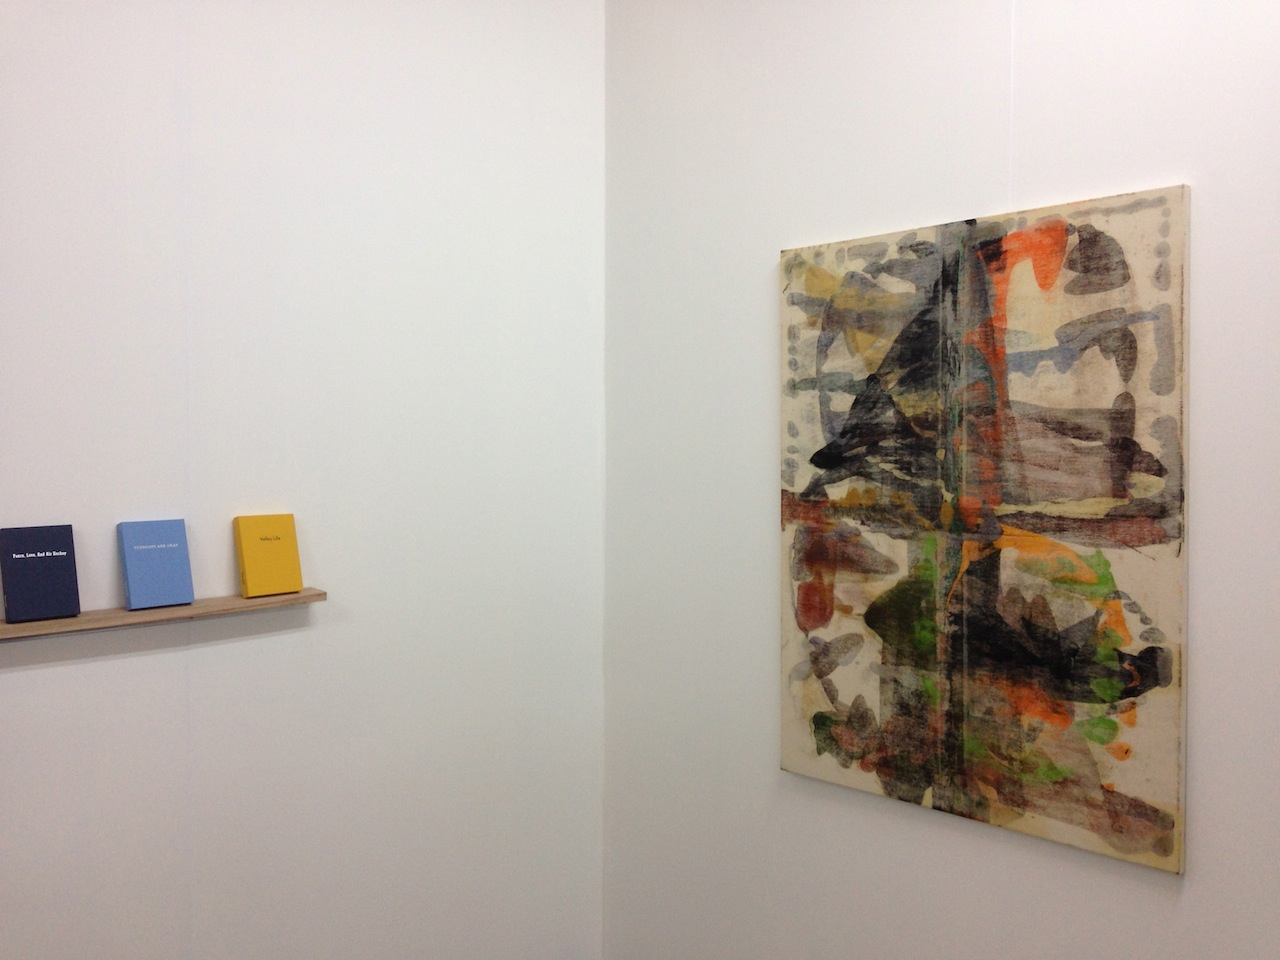 Paintings by Keith Varadi at Smart Objects' booth